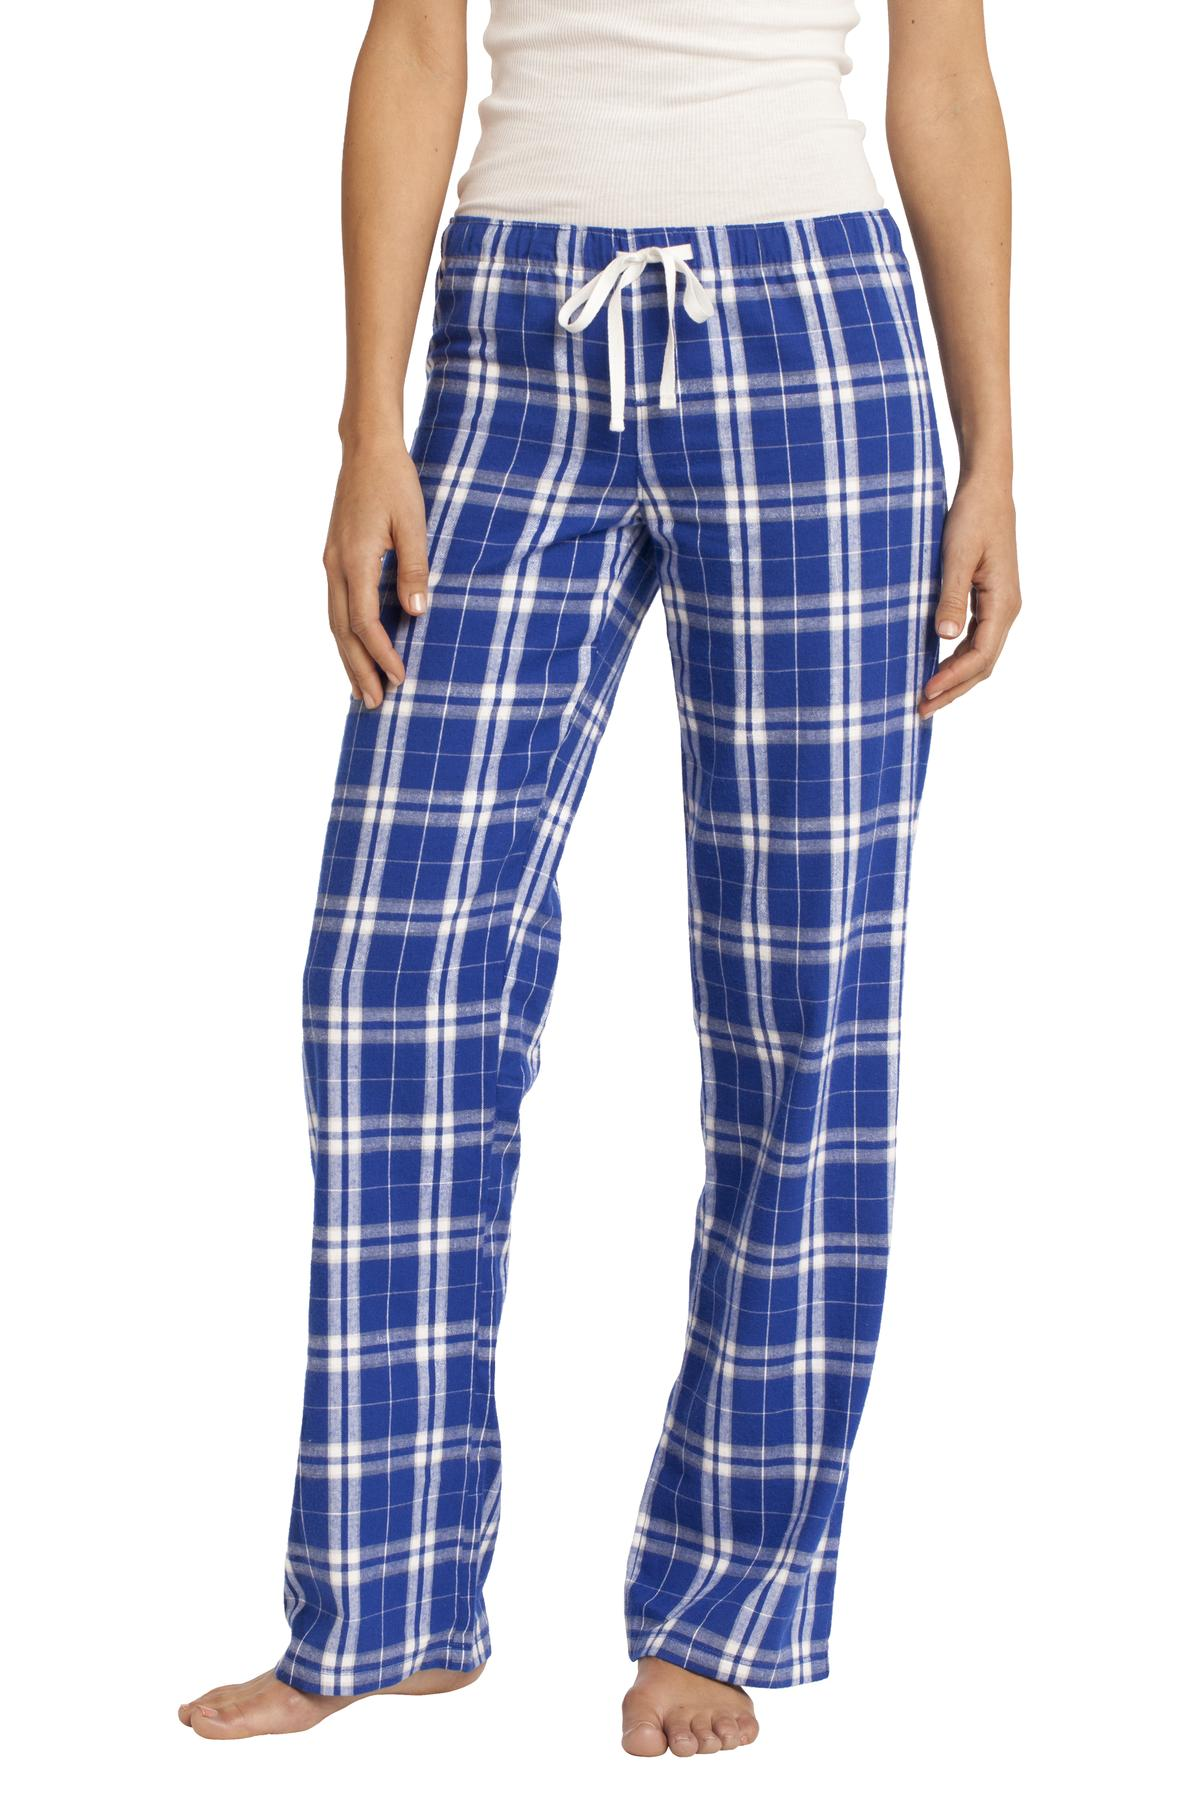 District ®  Women's Flannel Plaid Pant. DT2800 - Deep Royal